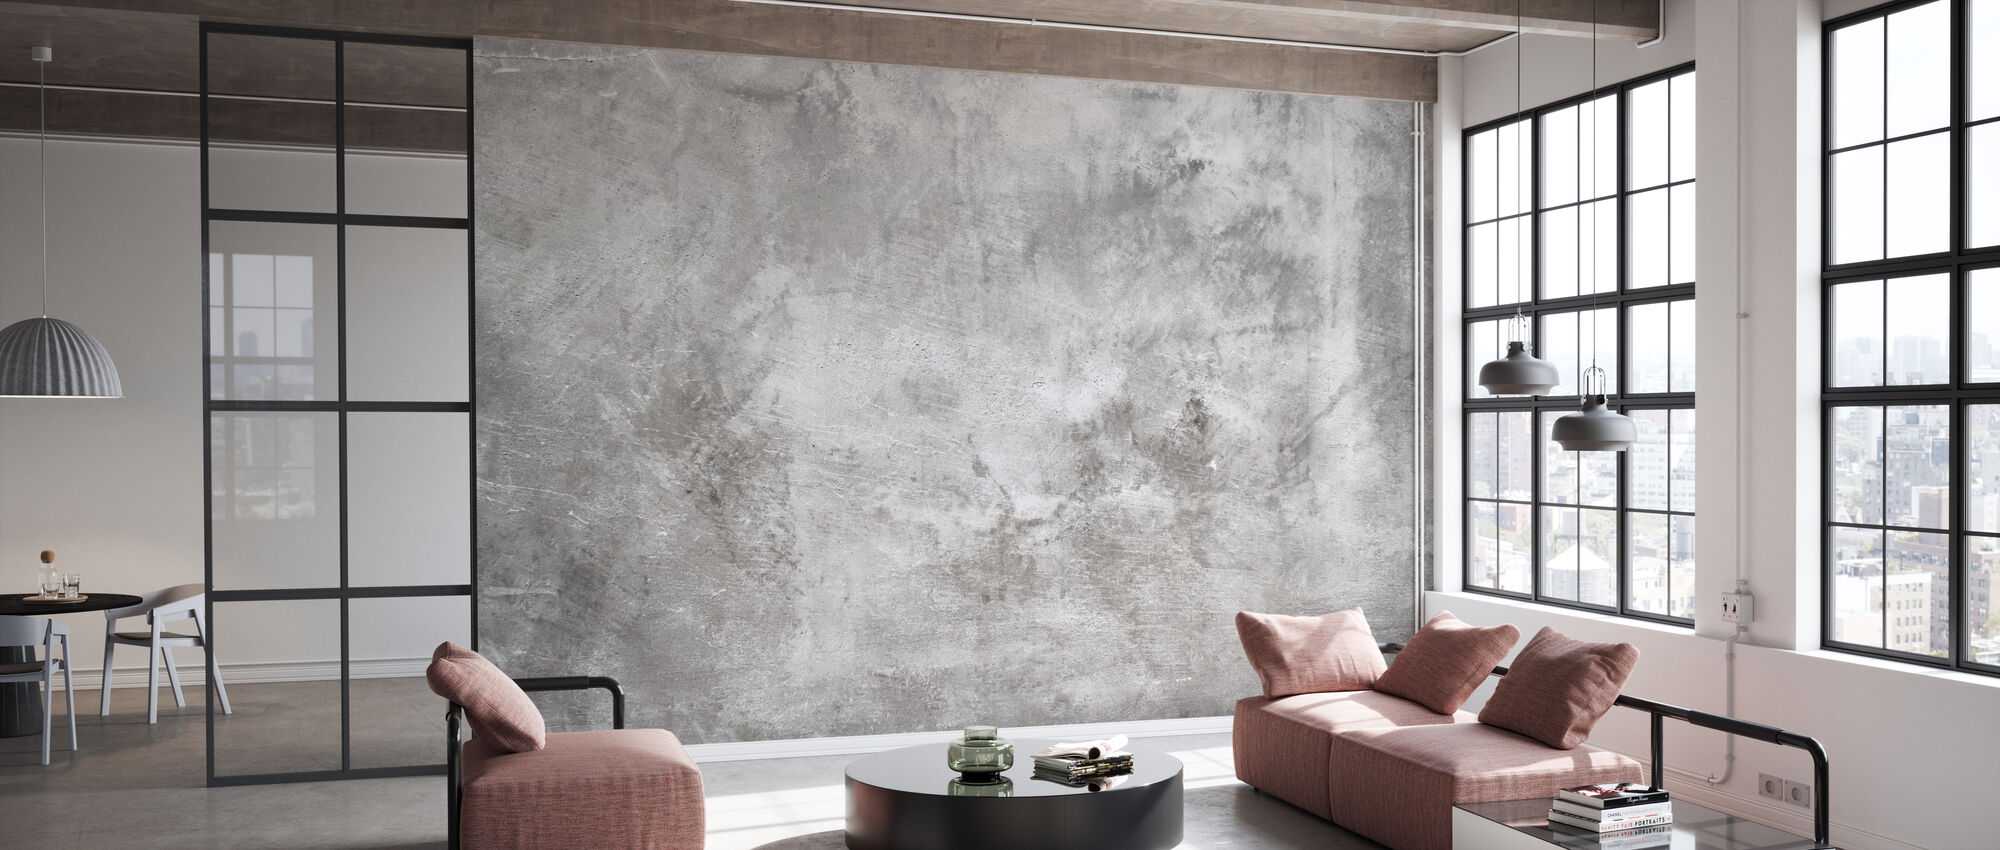 Grungy Rough Concrete Wall - Wallpaper - Office